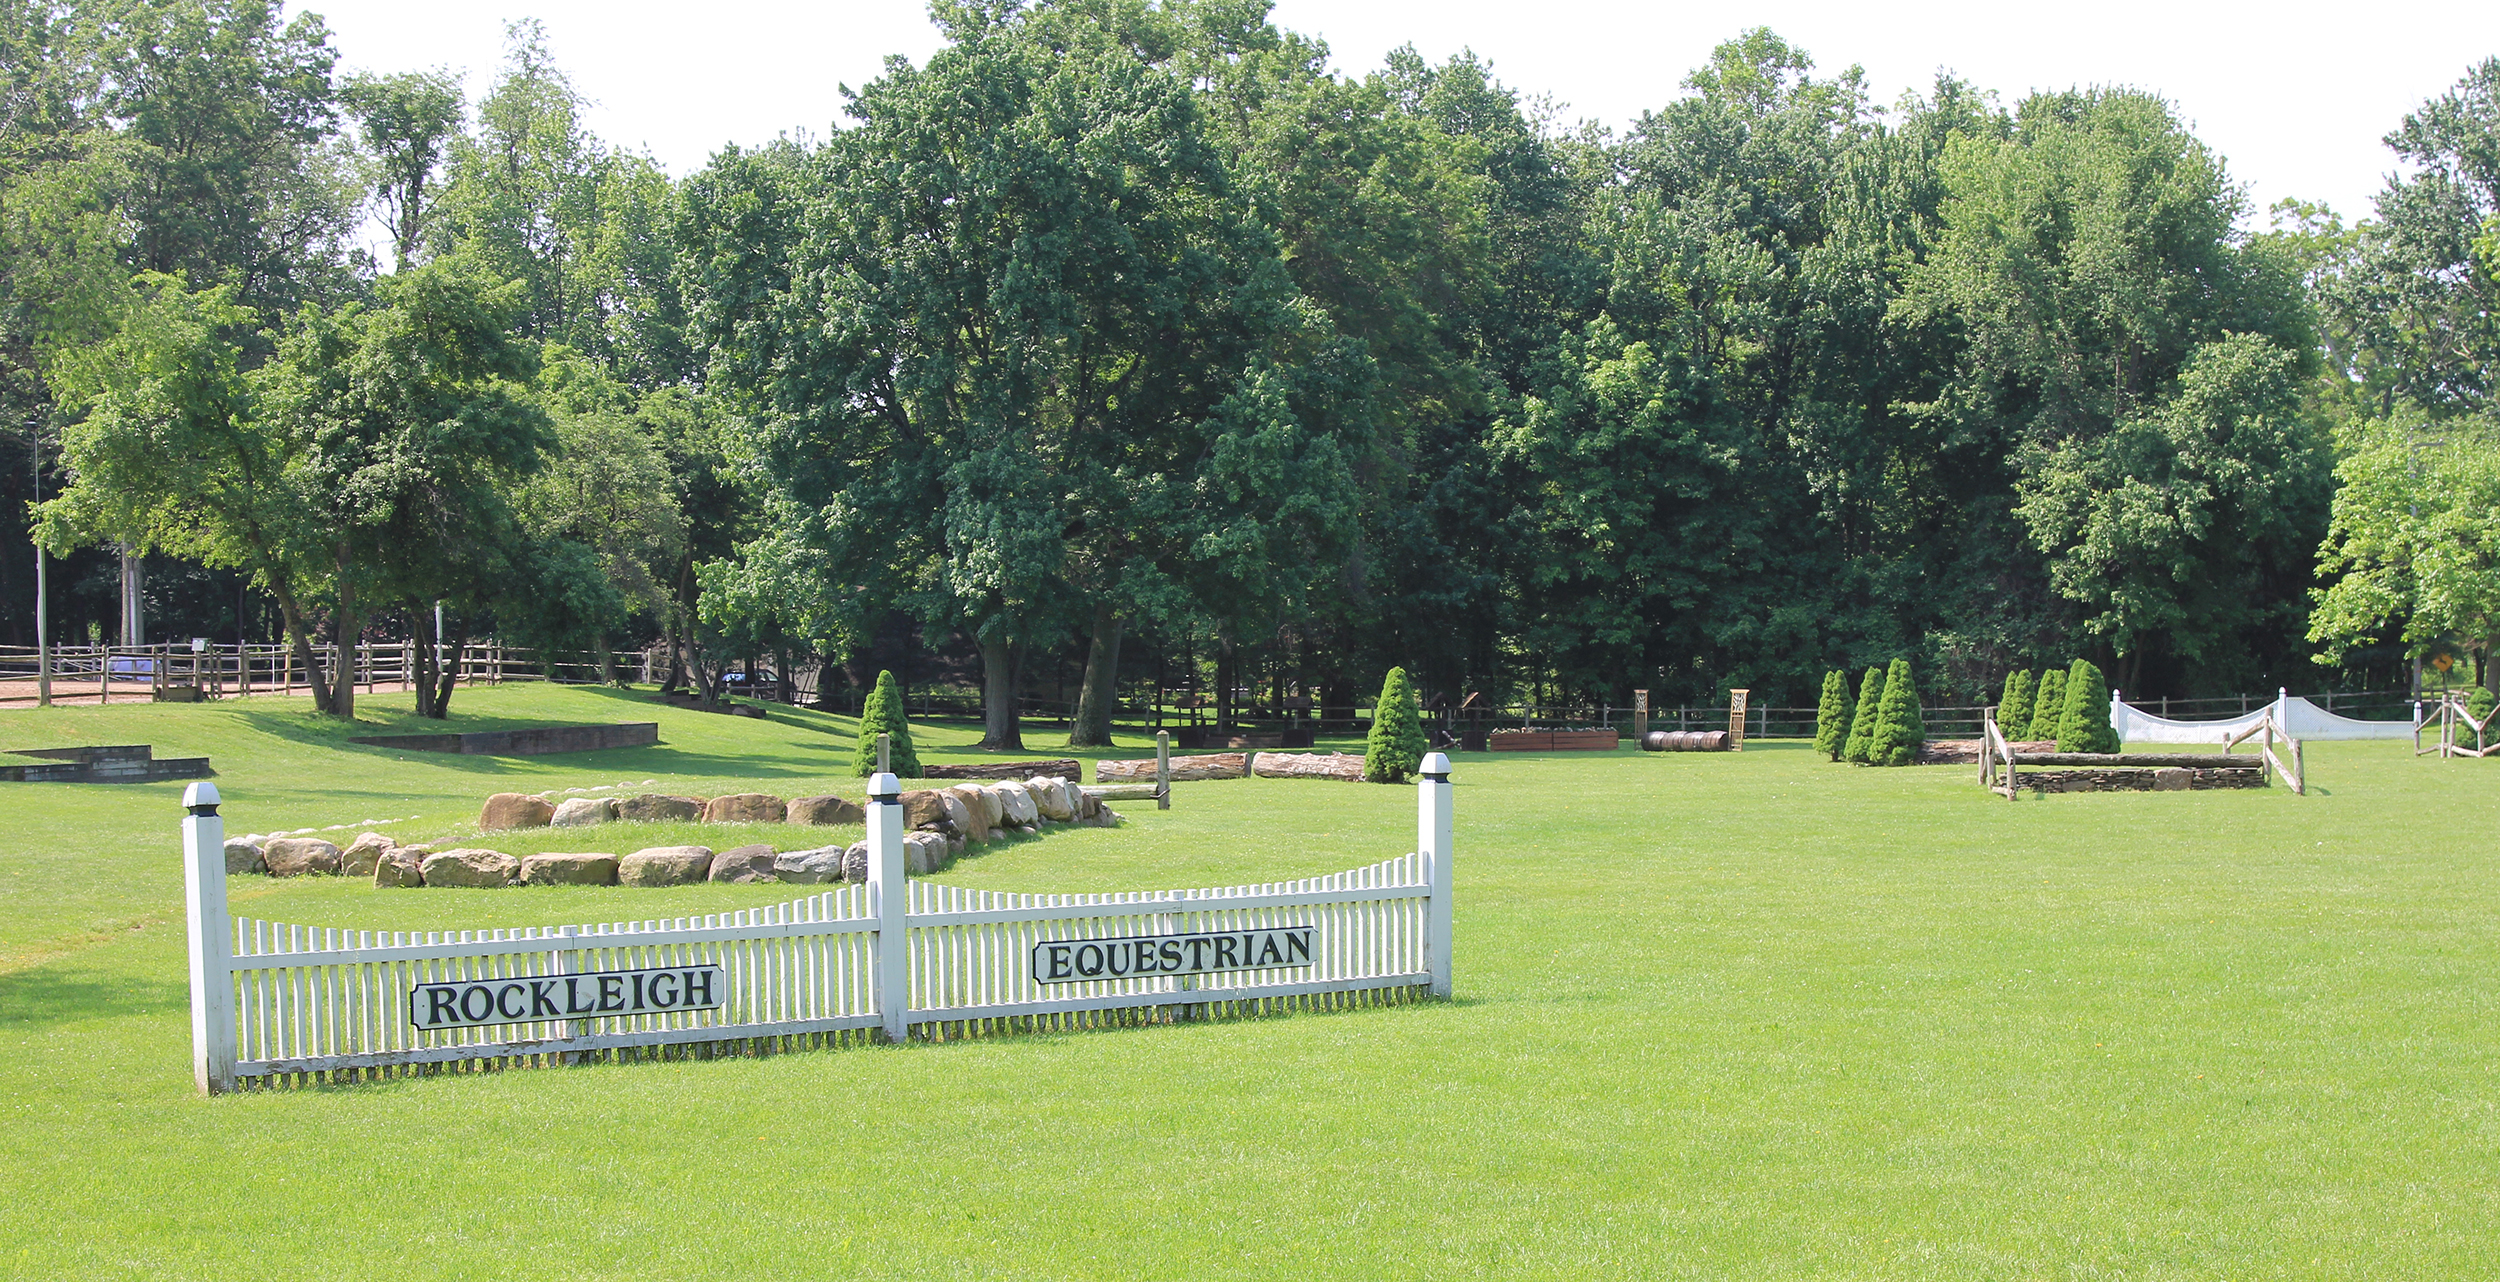 Rockleigh Equestrian Centre Eventing Field